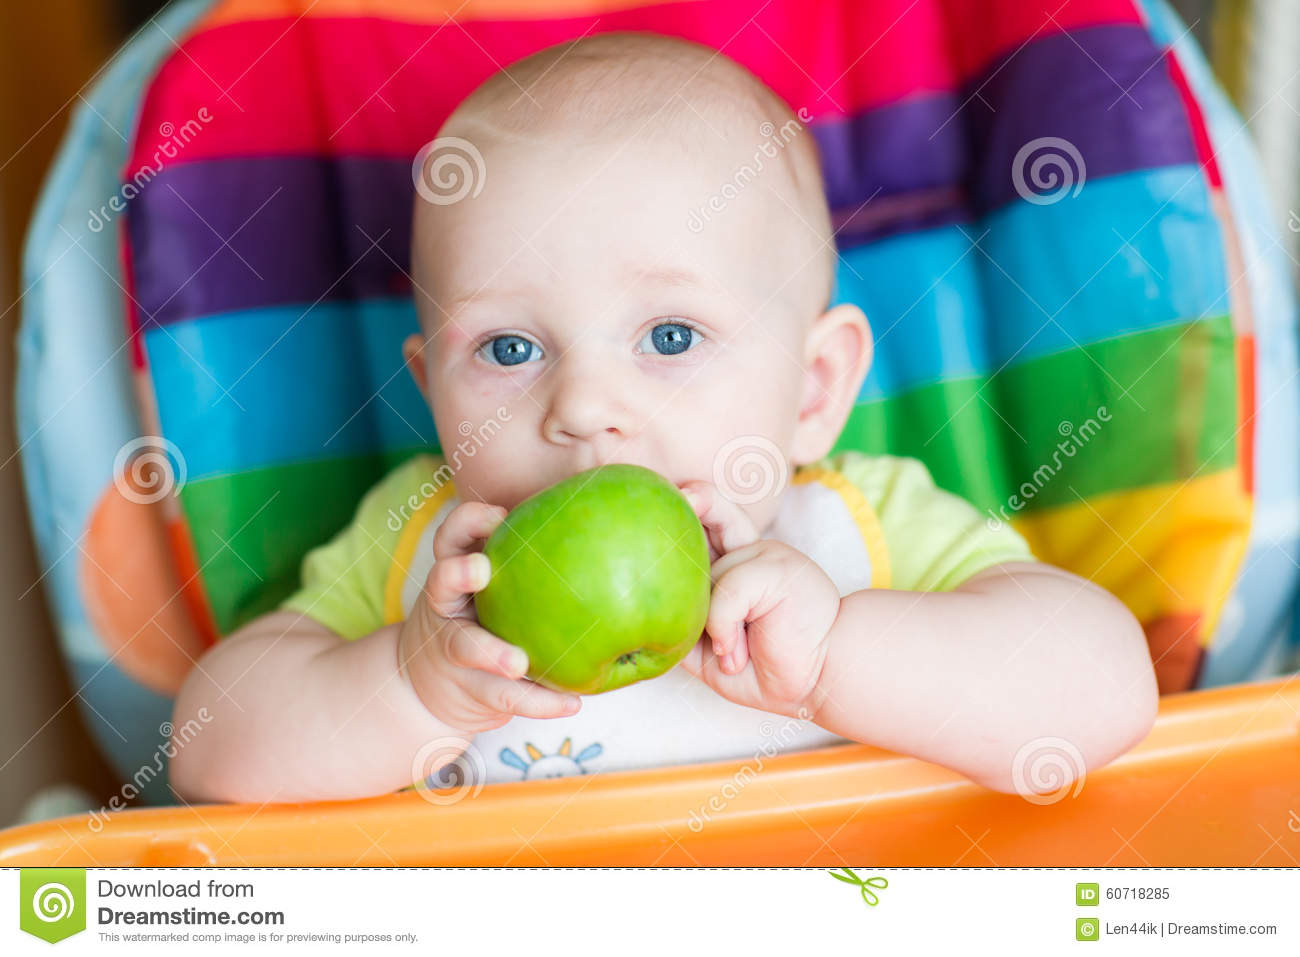 Baby Food Chair Adorable Baby Eating Apple In High Chair Stock Photo